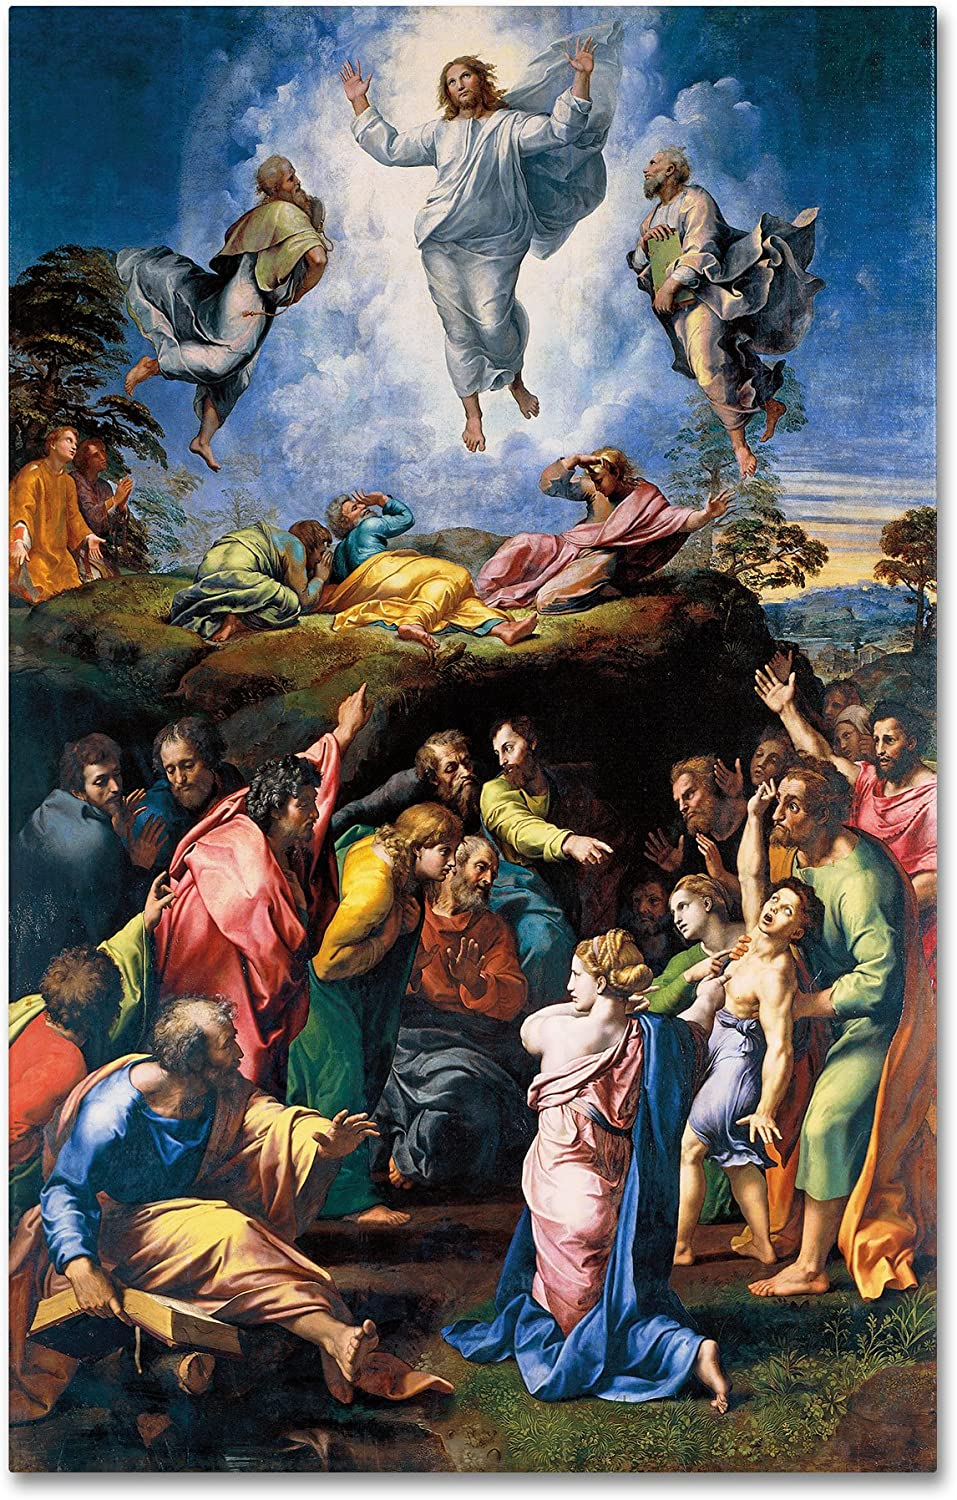 Amazon.com: The Transfiguration 1519-20 Artwork by Raphael, 30 by 47-Inch Canvas Wall Art: Posters & Prints